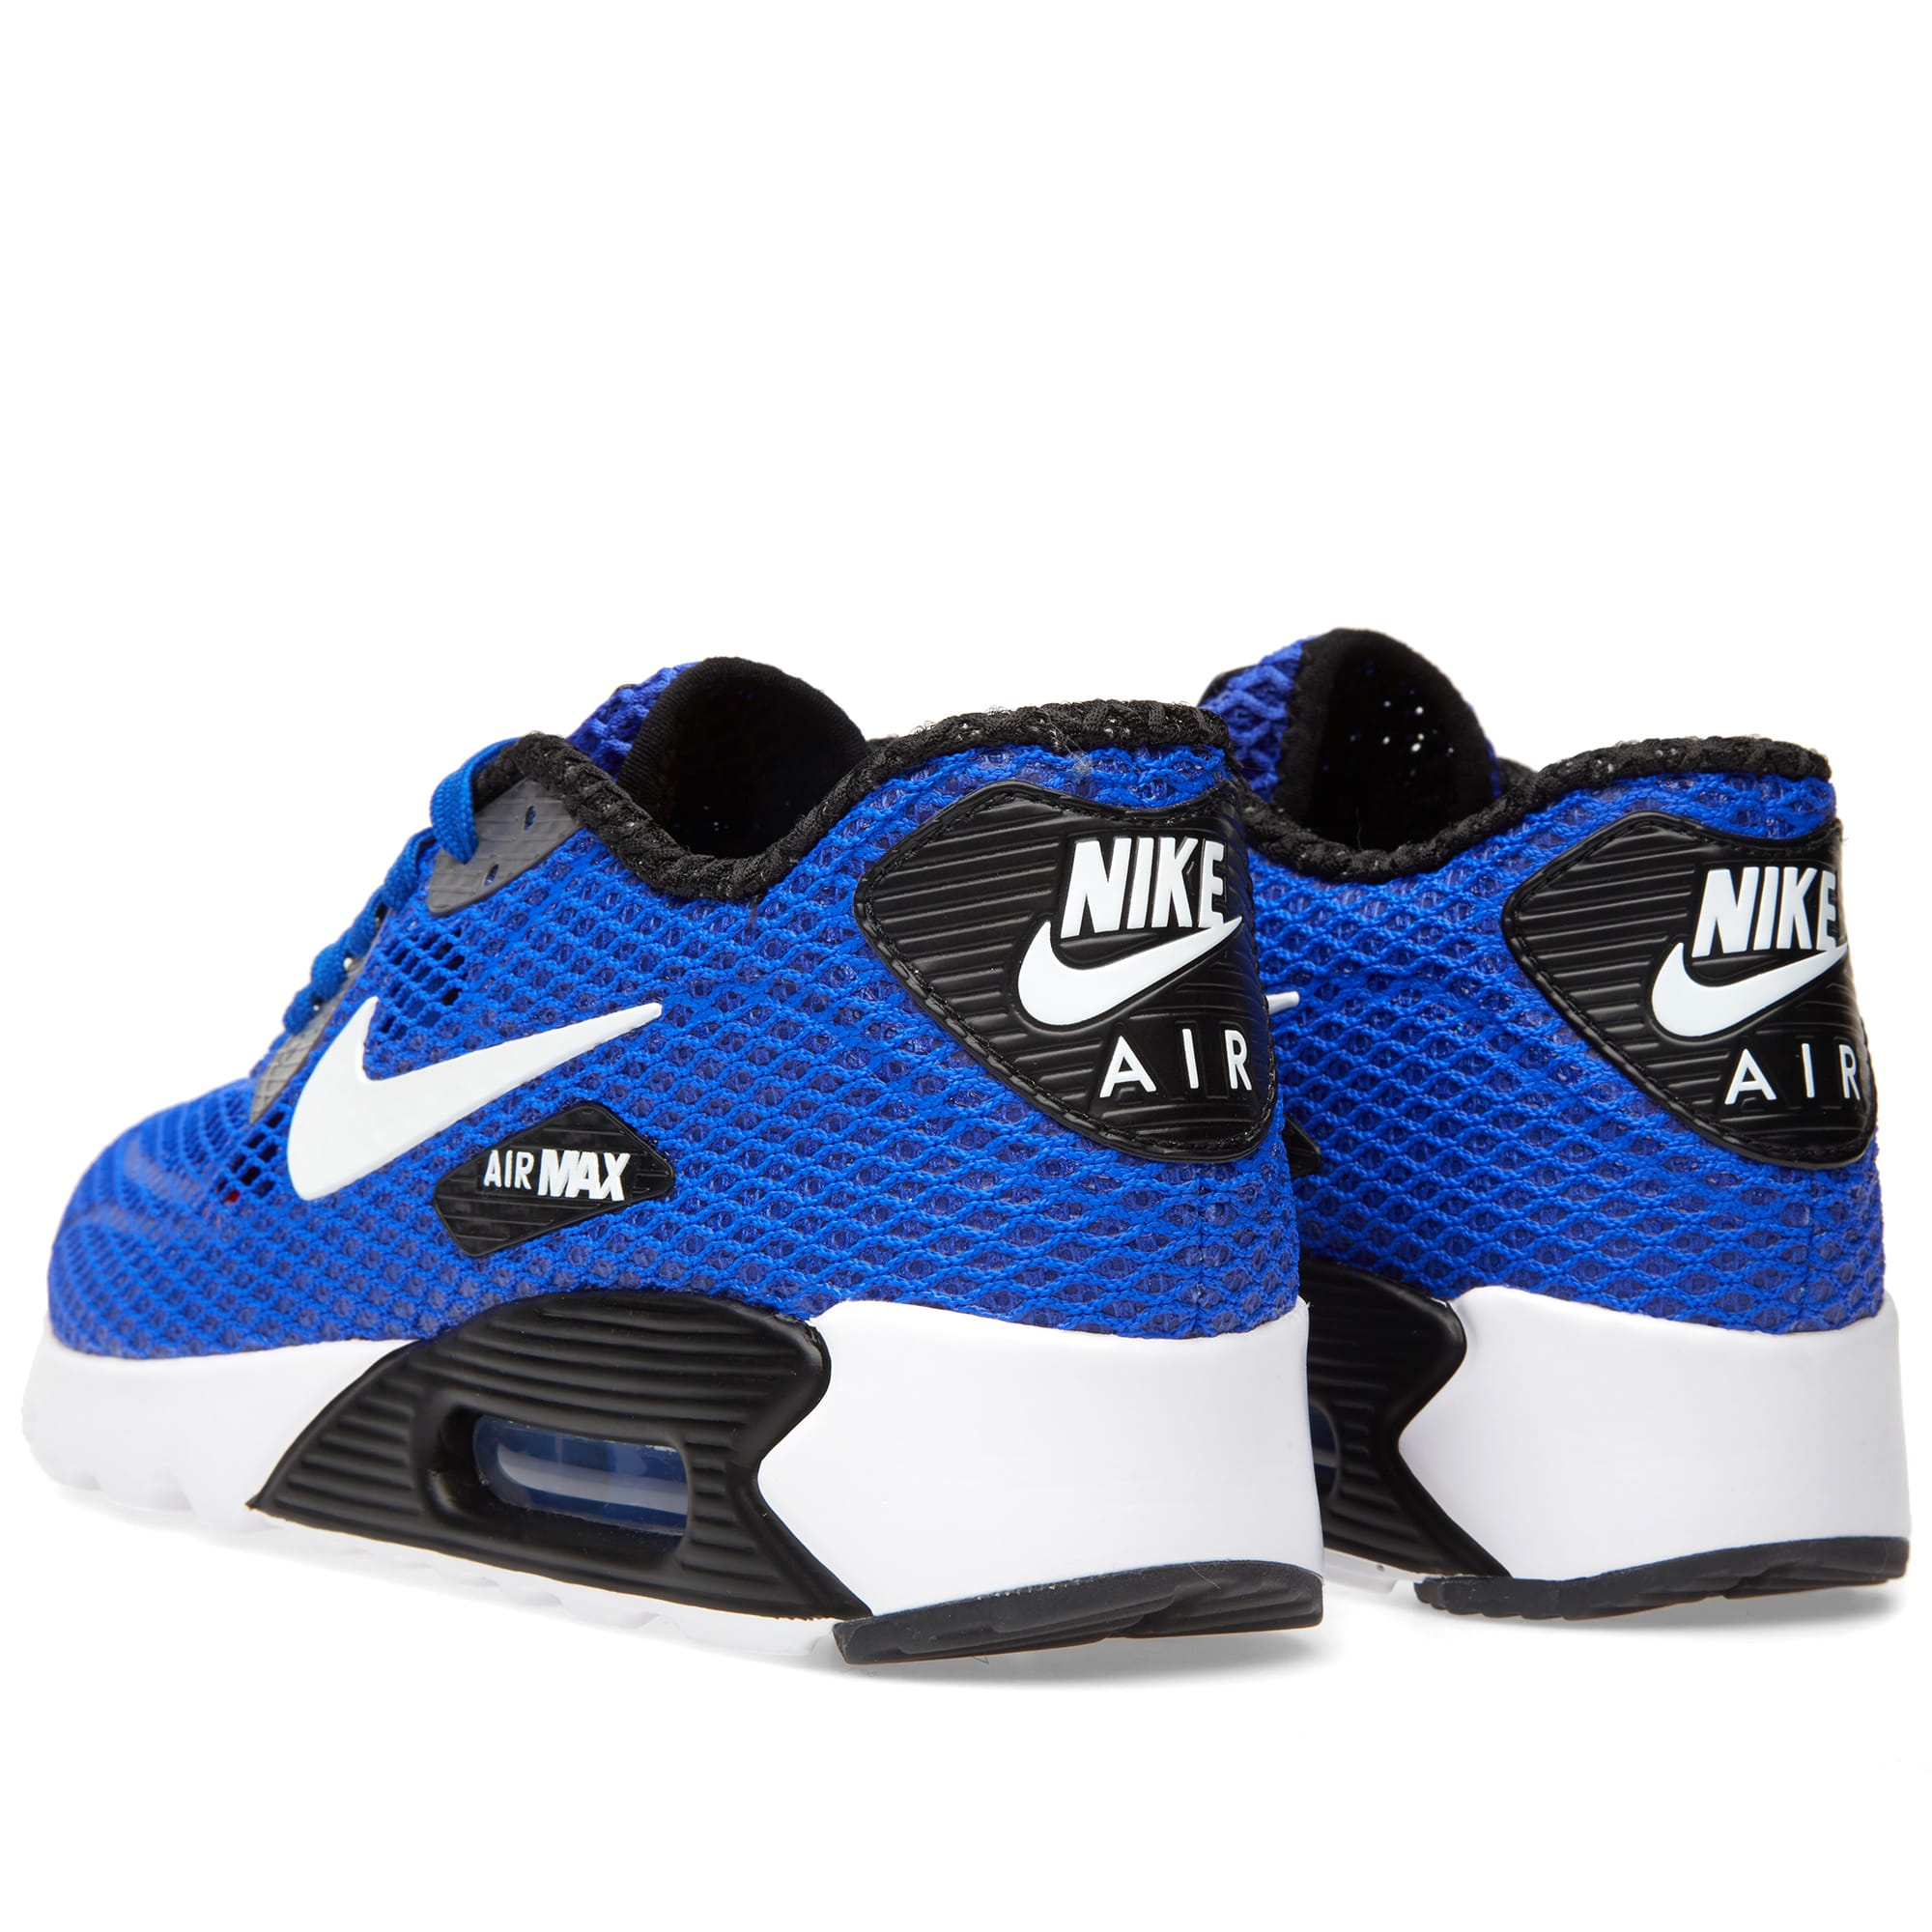 new product 5b159 2433d Nike Air Max 90 Ultra BR Plus QS Racer Blue. White   Dark Grey   END.